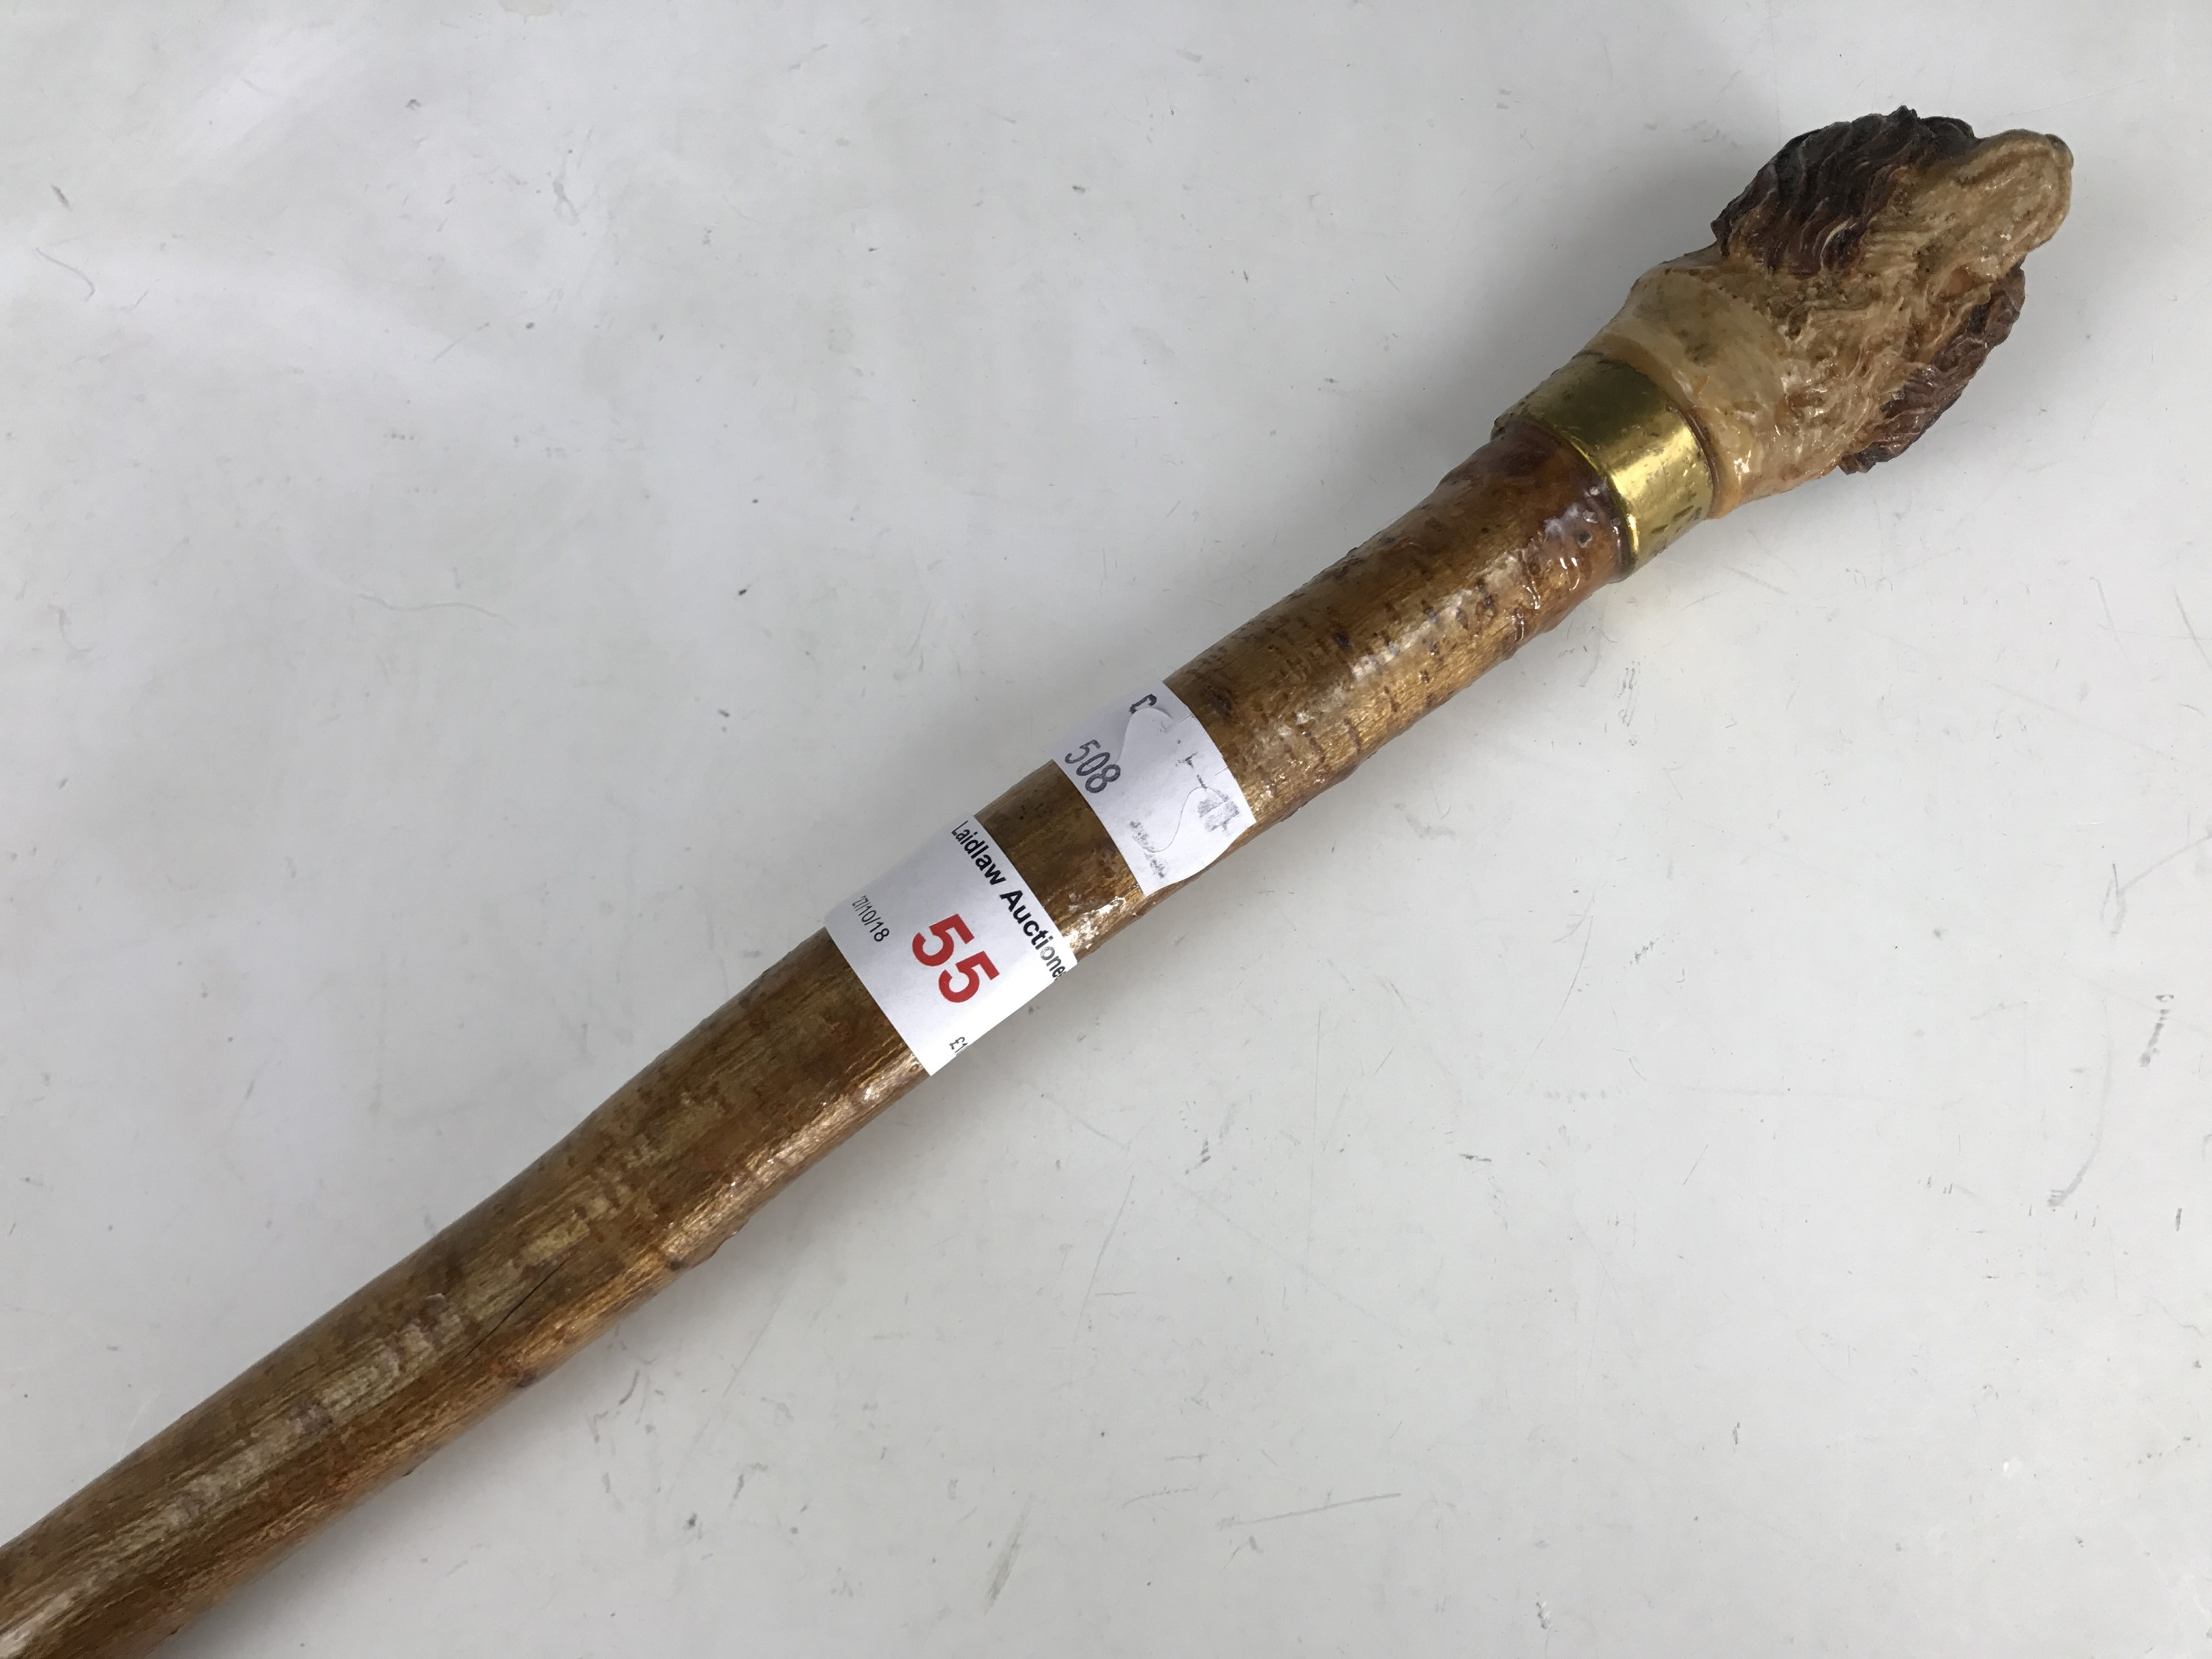 Lot 55 - A walking cane with pommel modelled as a King Charles spaniel